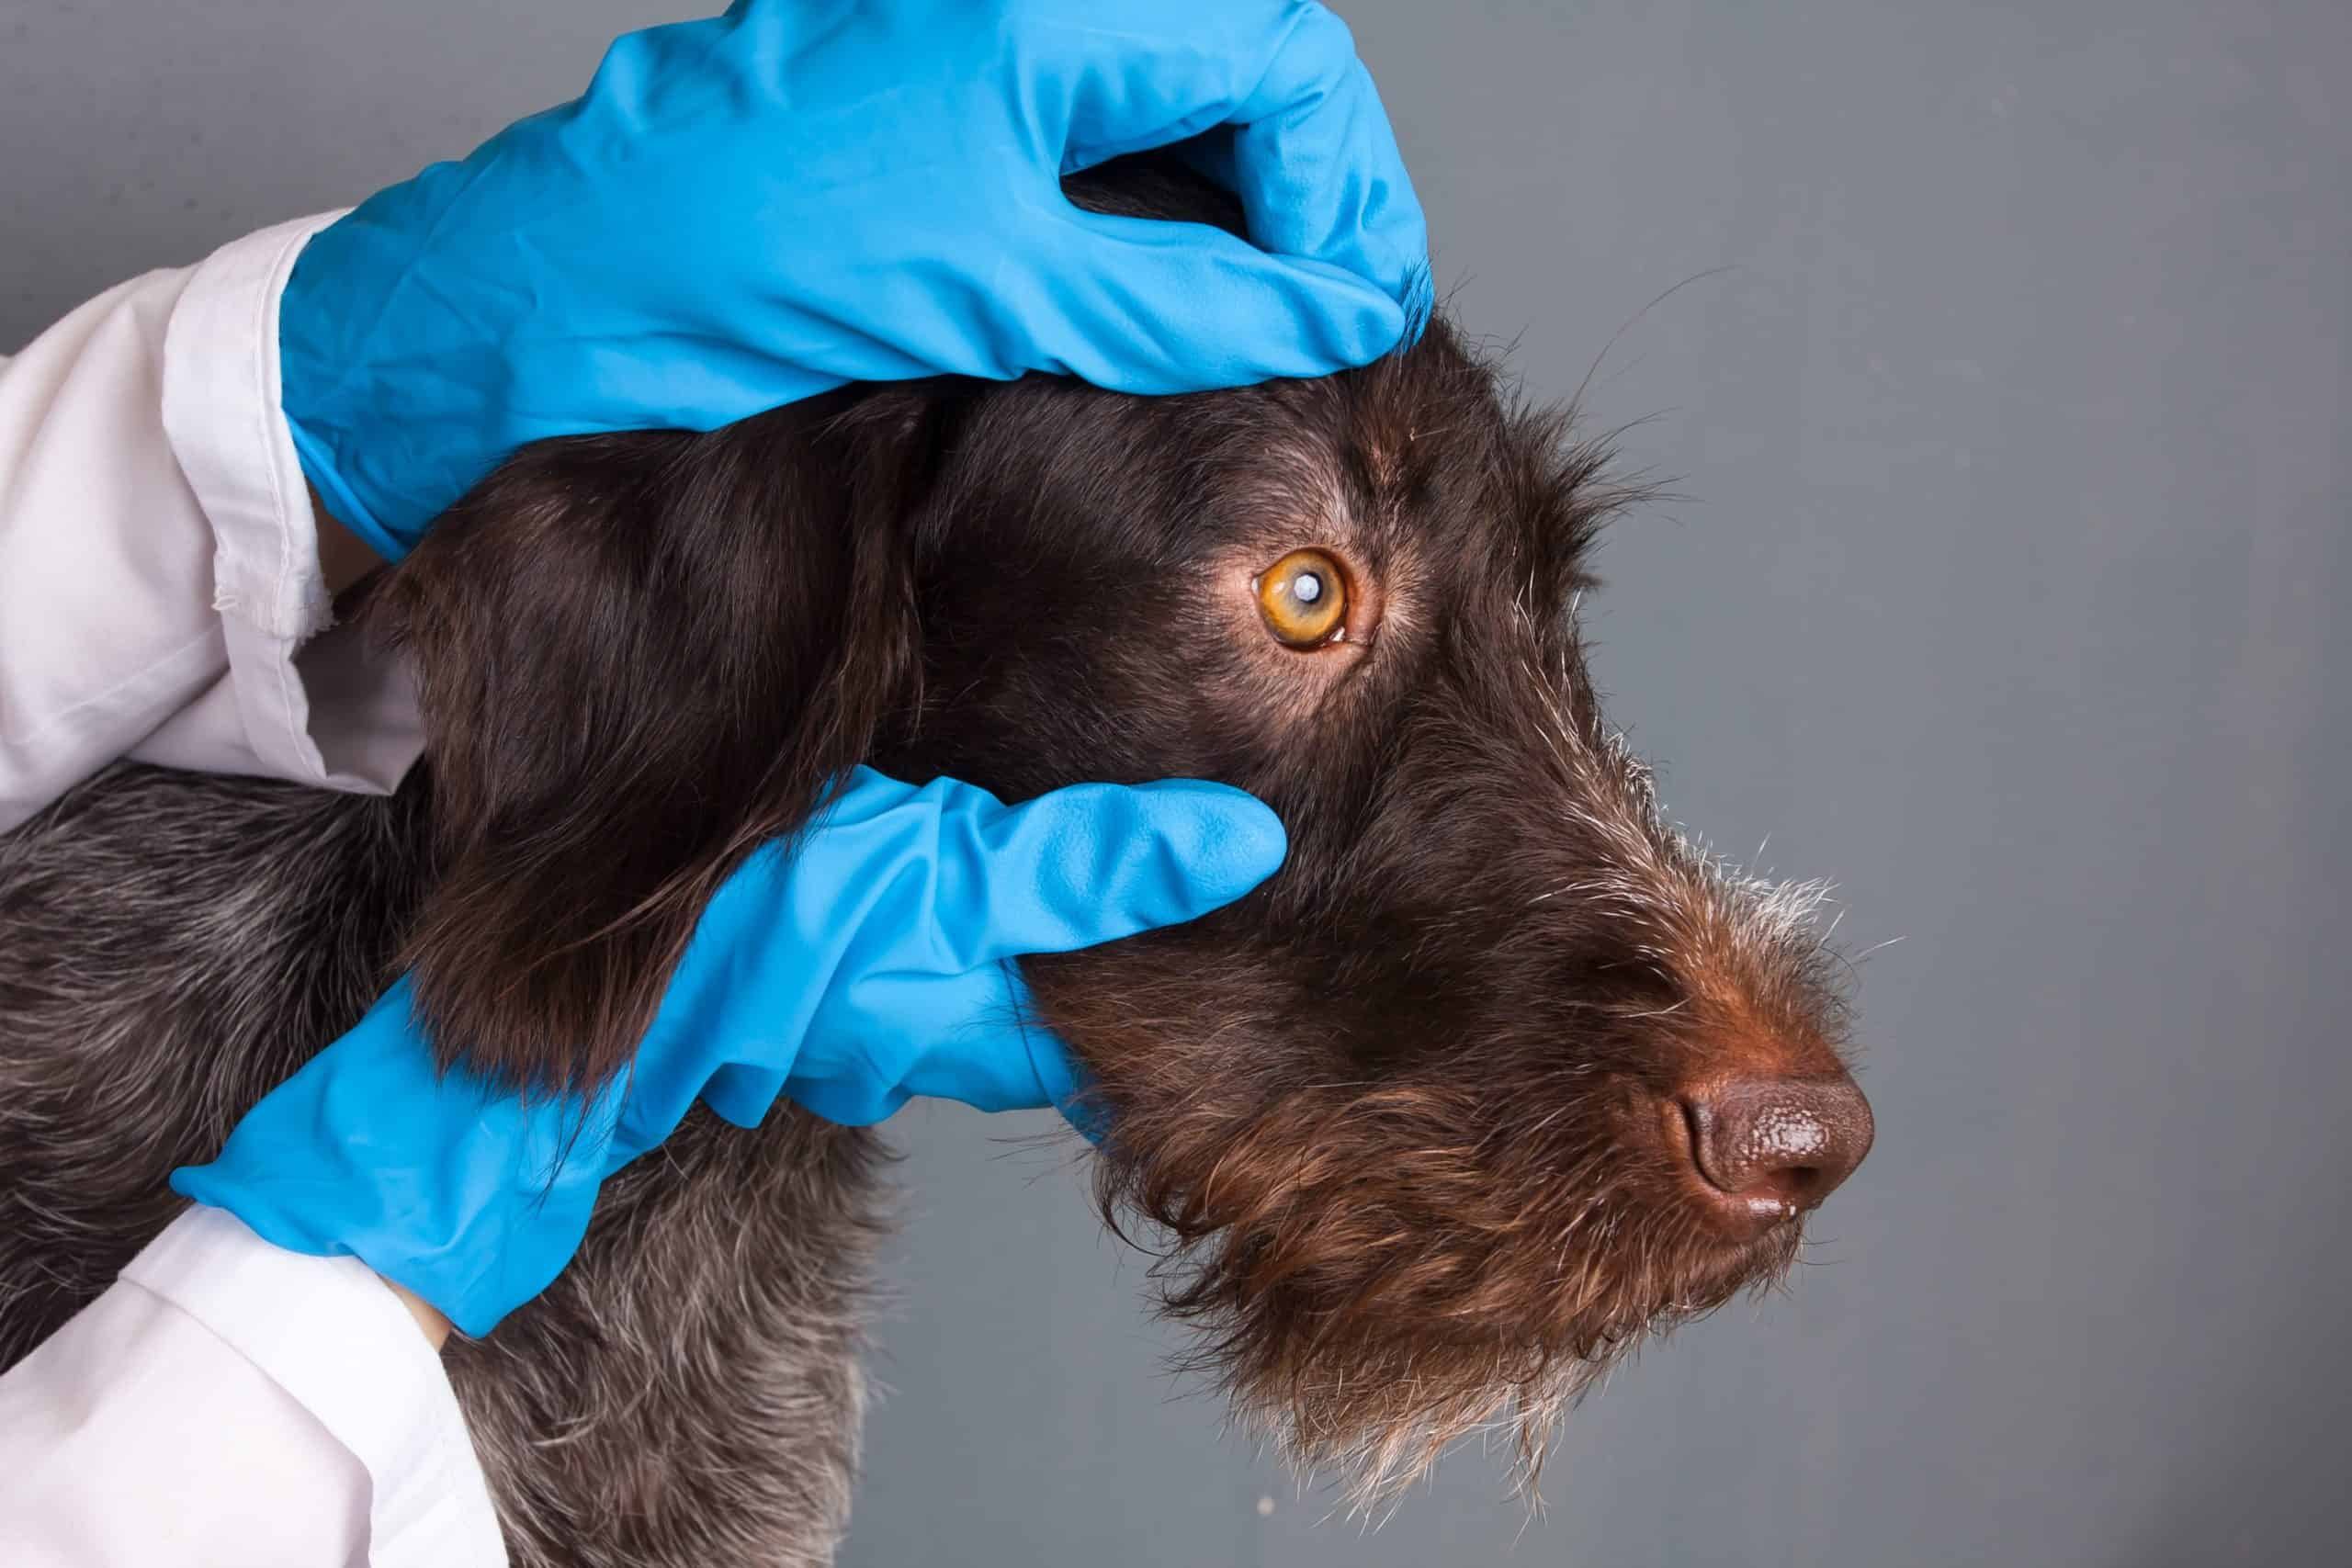 Vet examines dog's eyes. Take the dog to the vet immediately if he shows any symptoms of canine distemper.